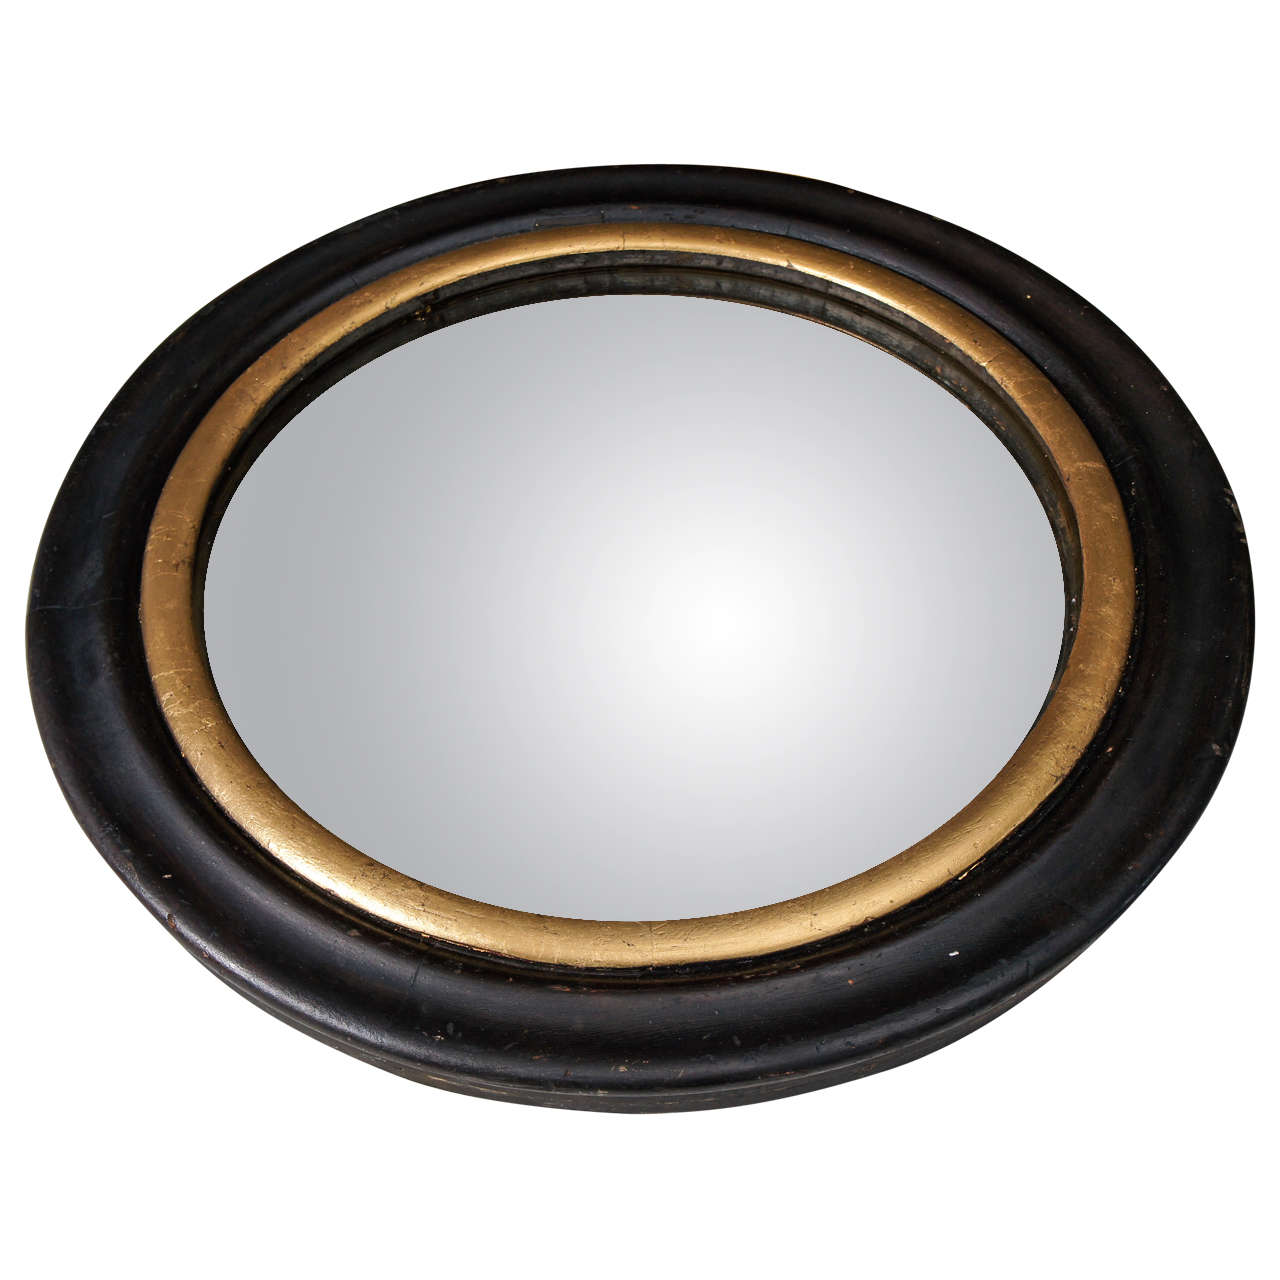 Circular frame with convex mirror at 1stdibs for Convex mirror